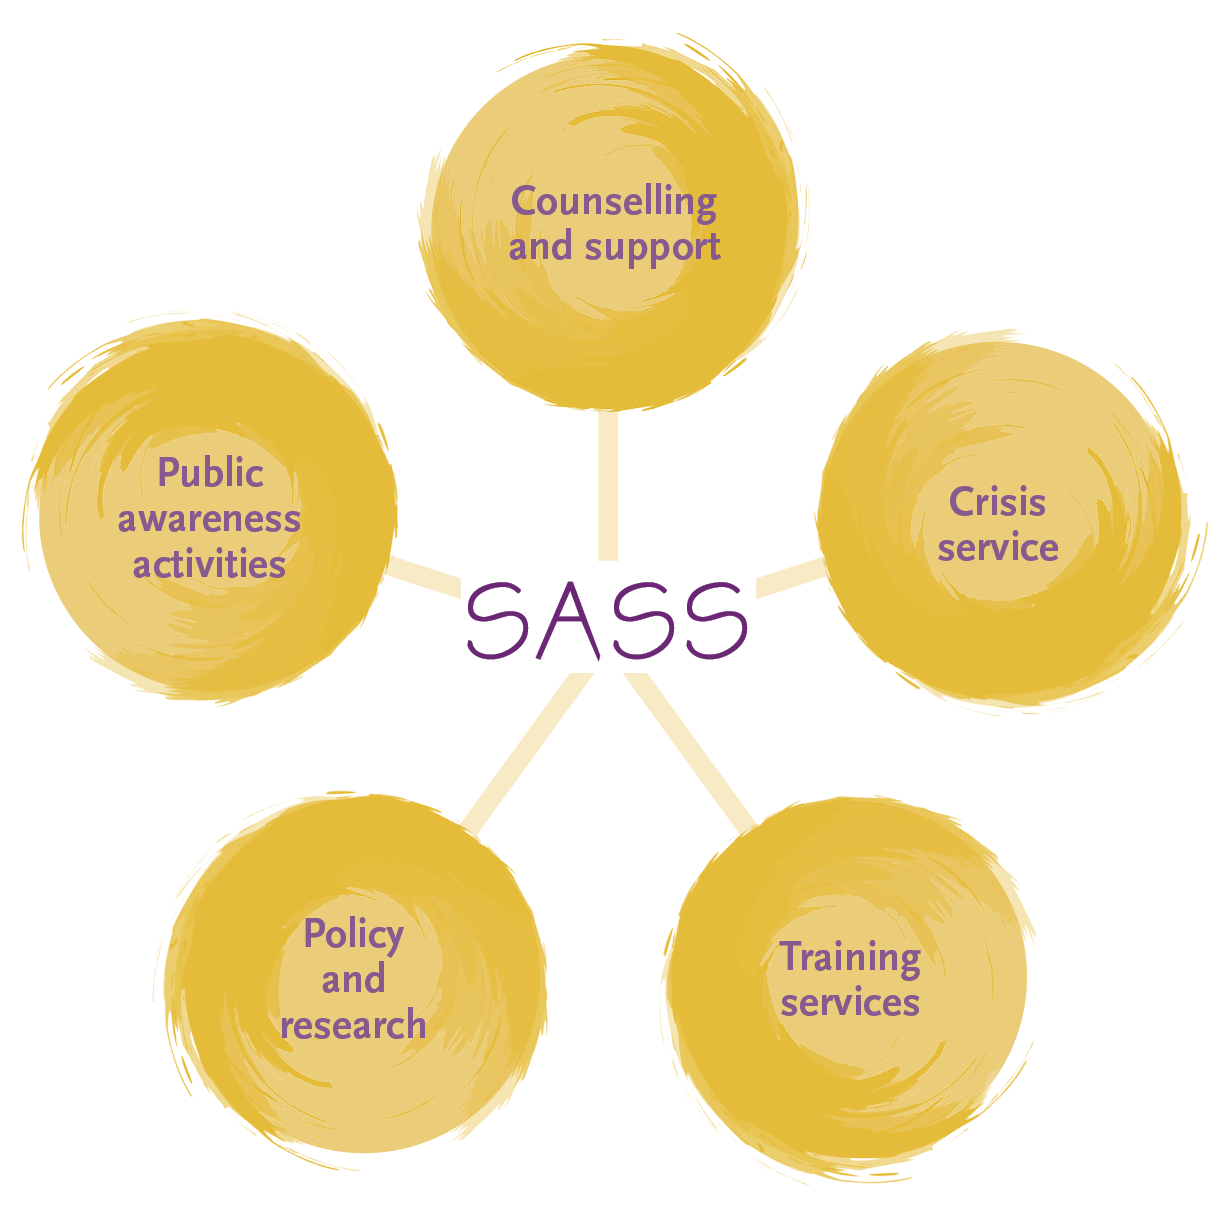 SASS sercices include counselling, 24 hour support, advocacy, policy and training